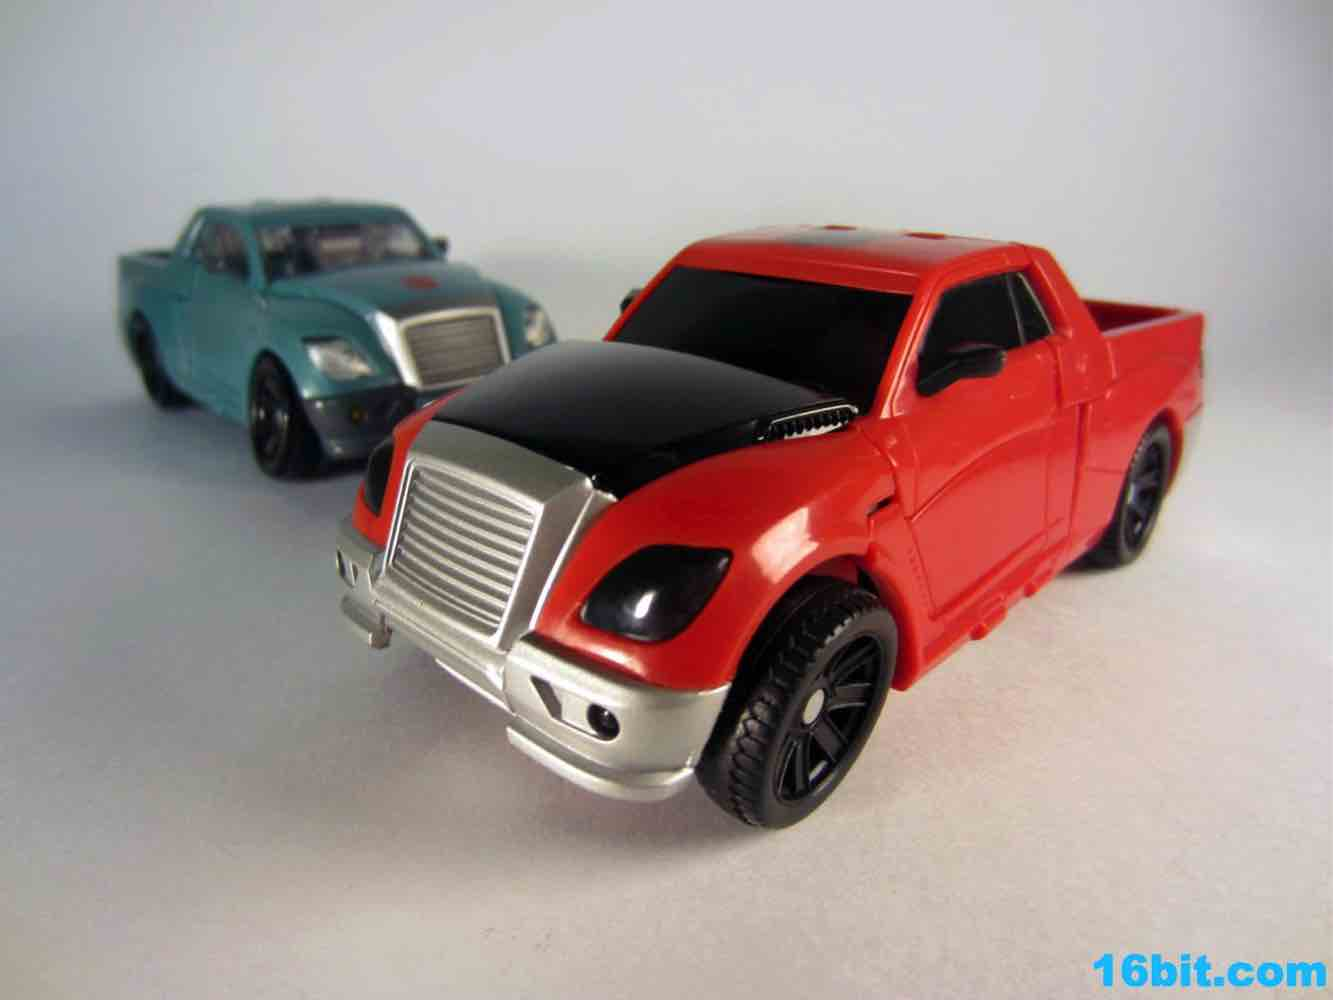 Toys From Tj Maxx : Bit figure of the day review hasbro transformers